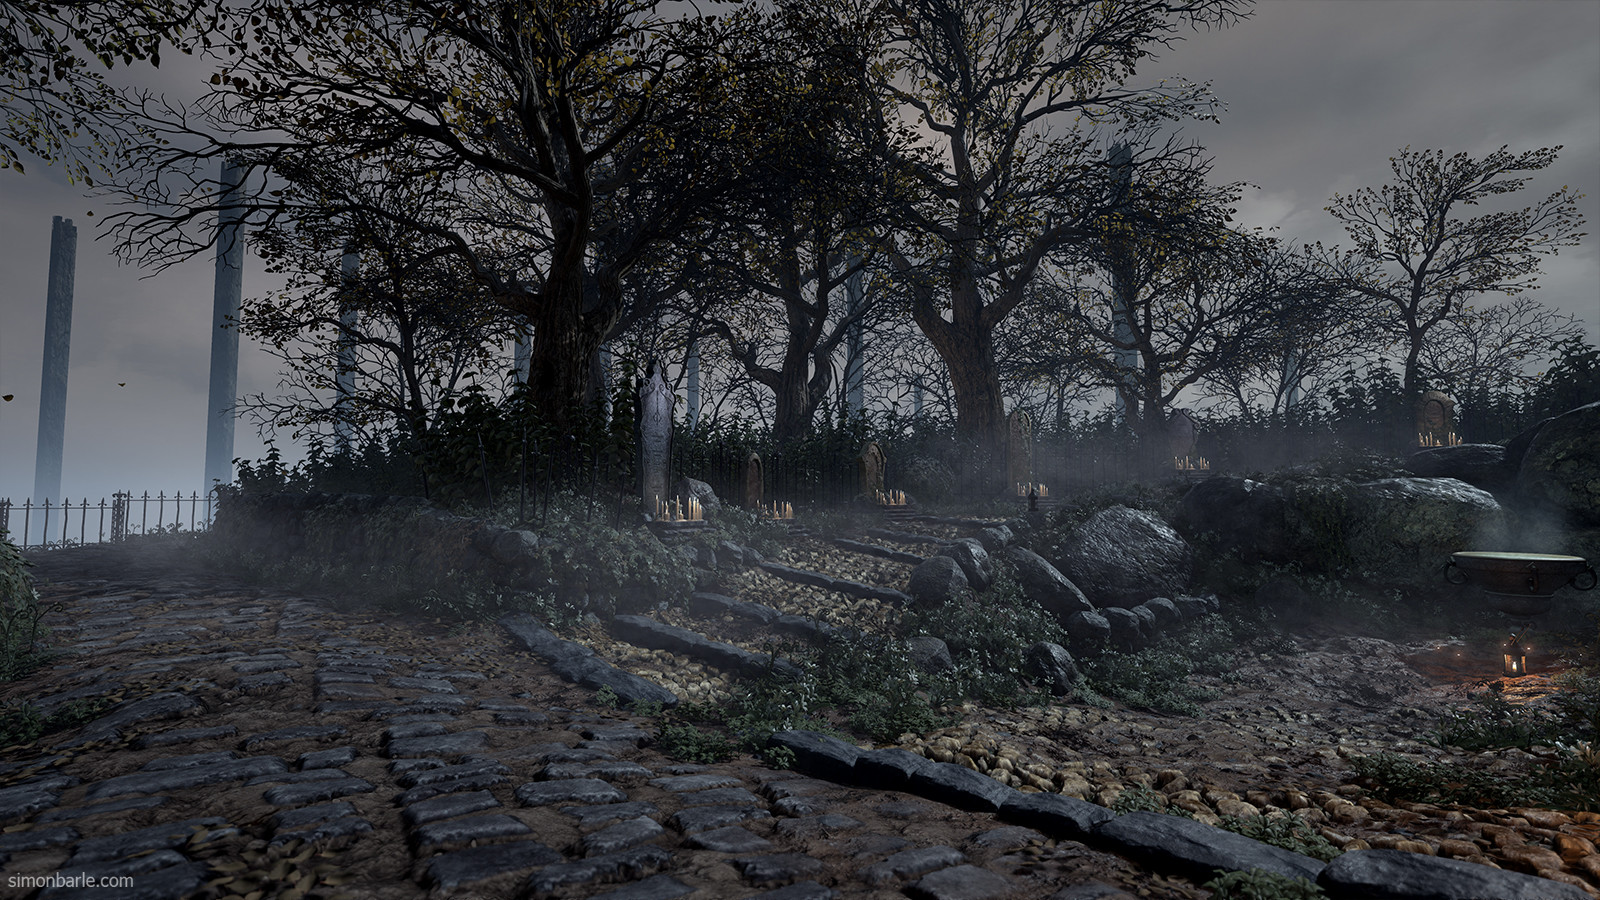 Bloodborne recreated in Unreal Engine 4 looks stunning - VG247